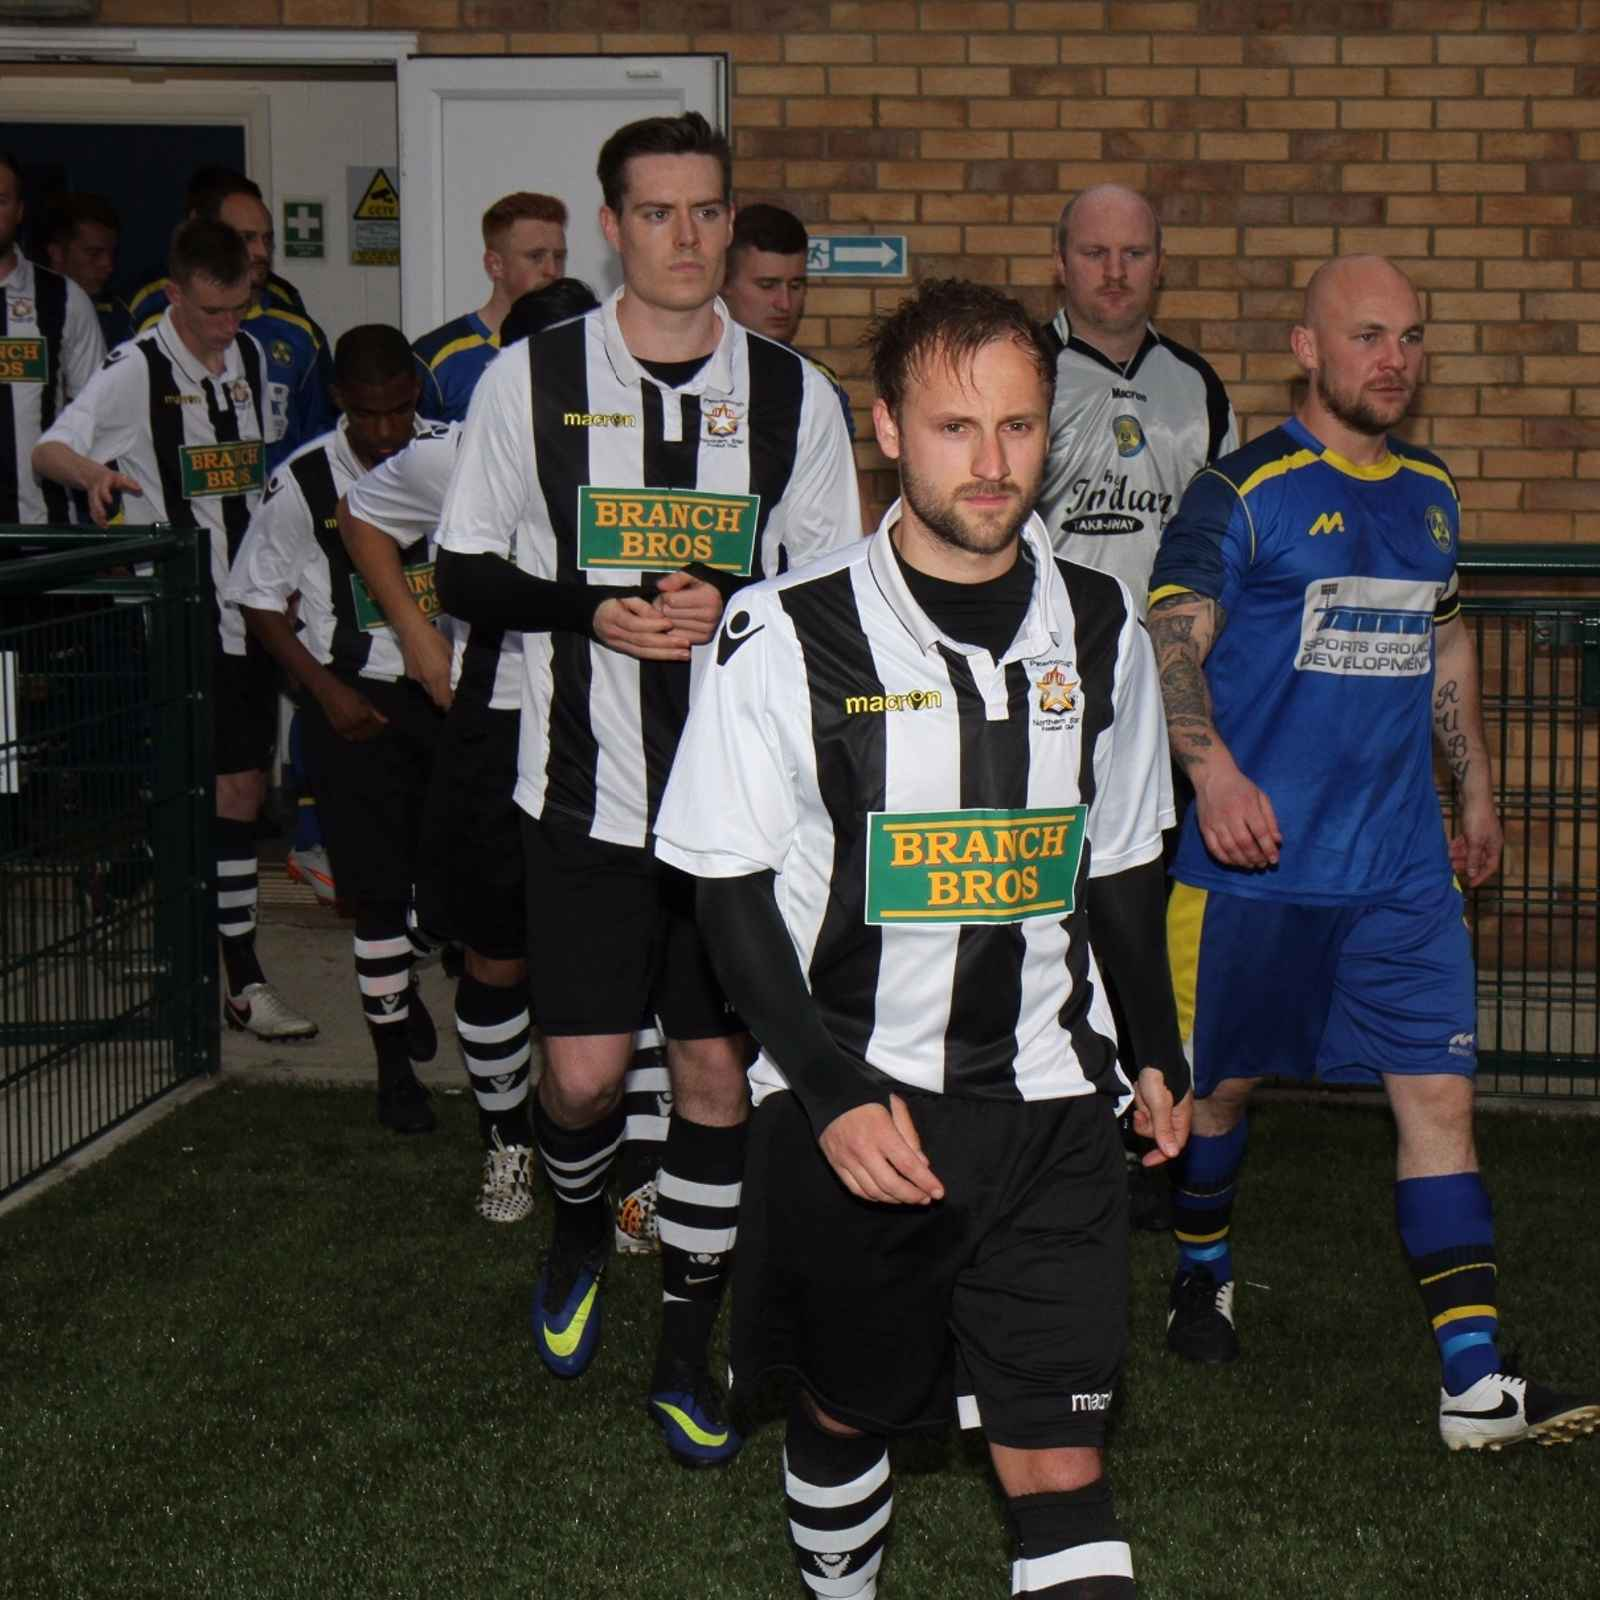 Hinchingbrooke Cup Final: Peterborough Sports vs Star (4:1) - by Tim Gates